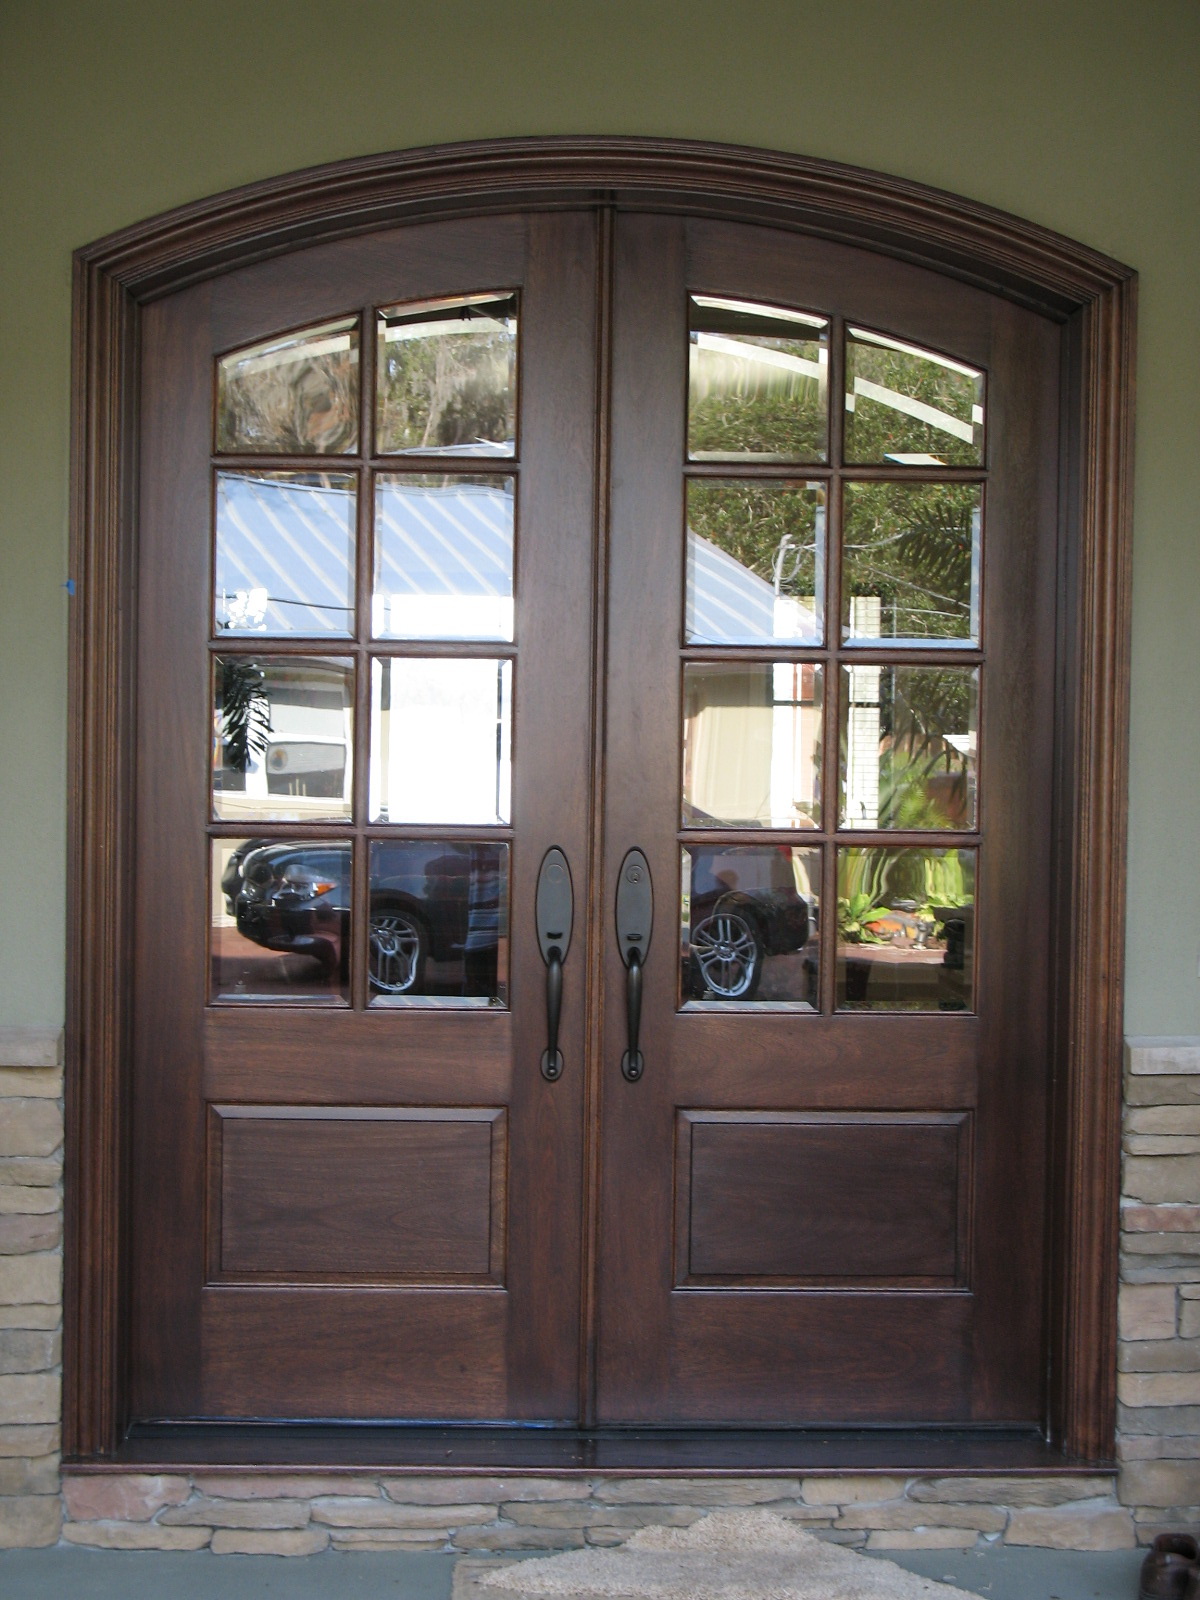 1000 images about front doors on pinterest for French door designs